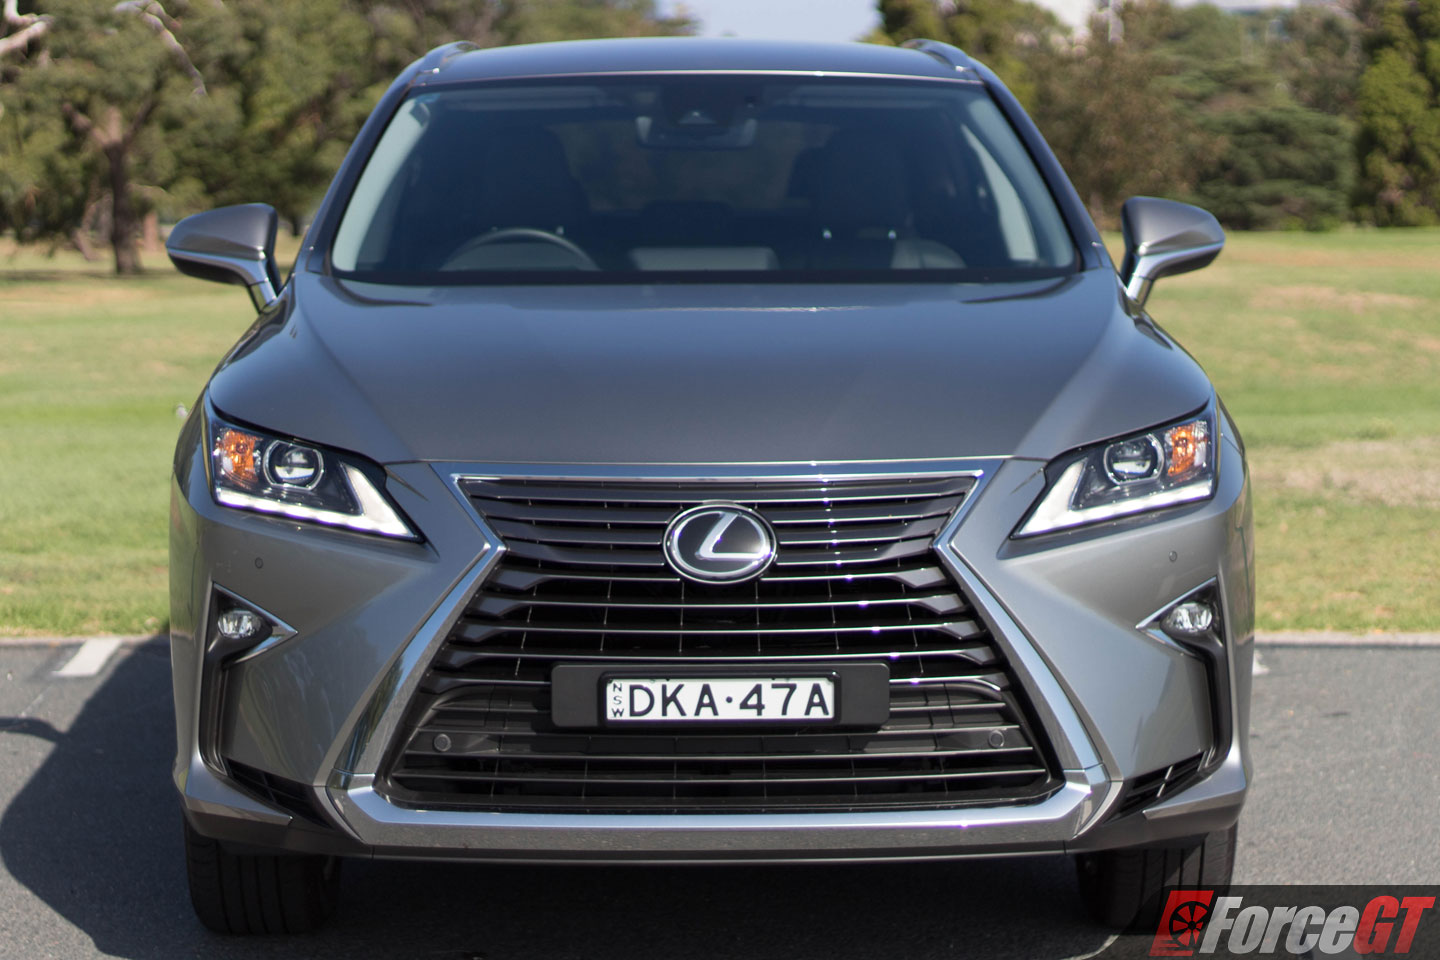 Volvo Xc90 Towing Capacity >> 2017 Lexus RX 200t Review - ForceGT.com